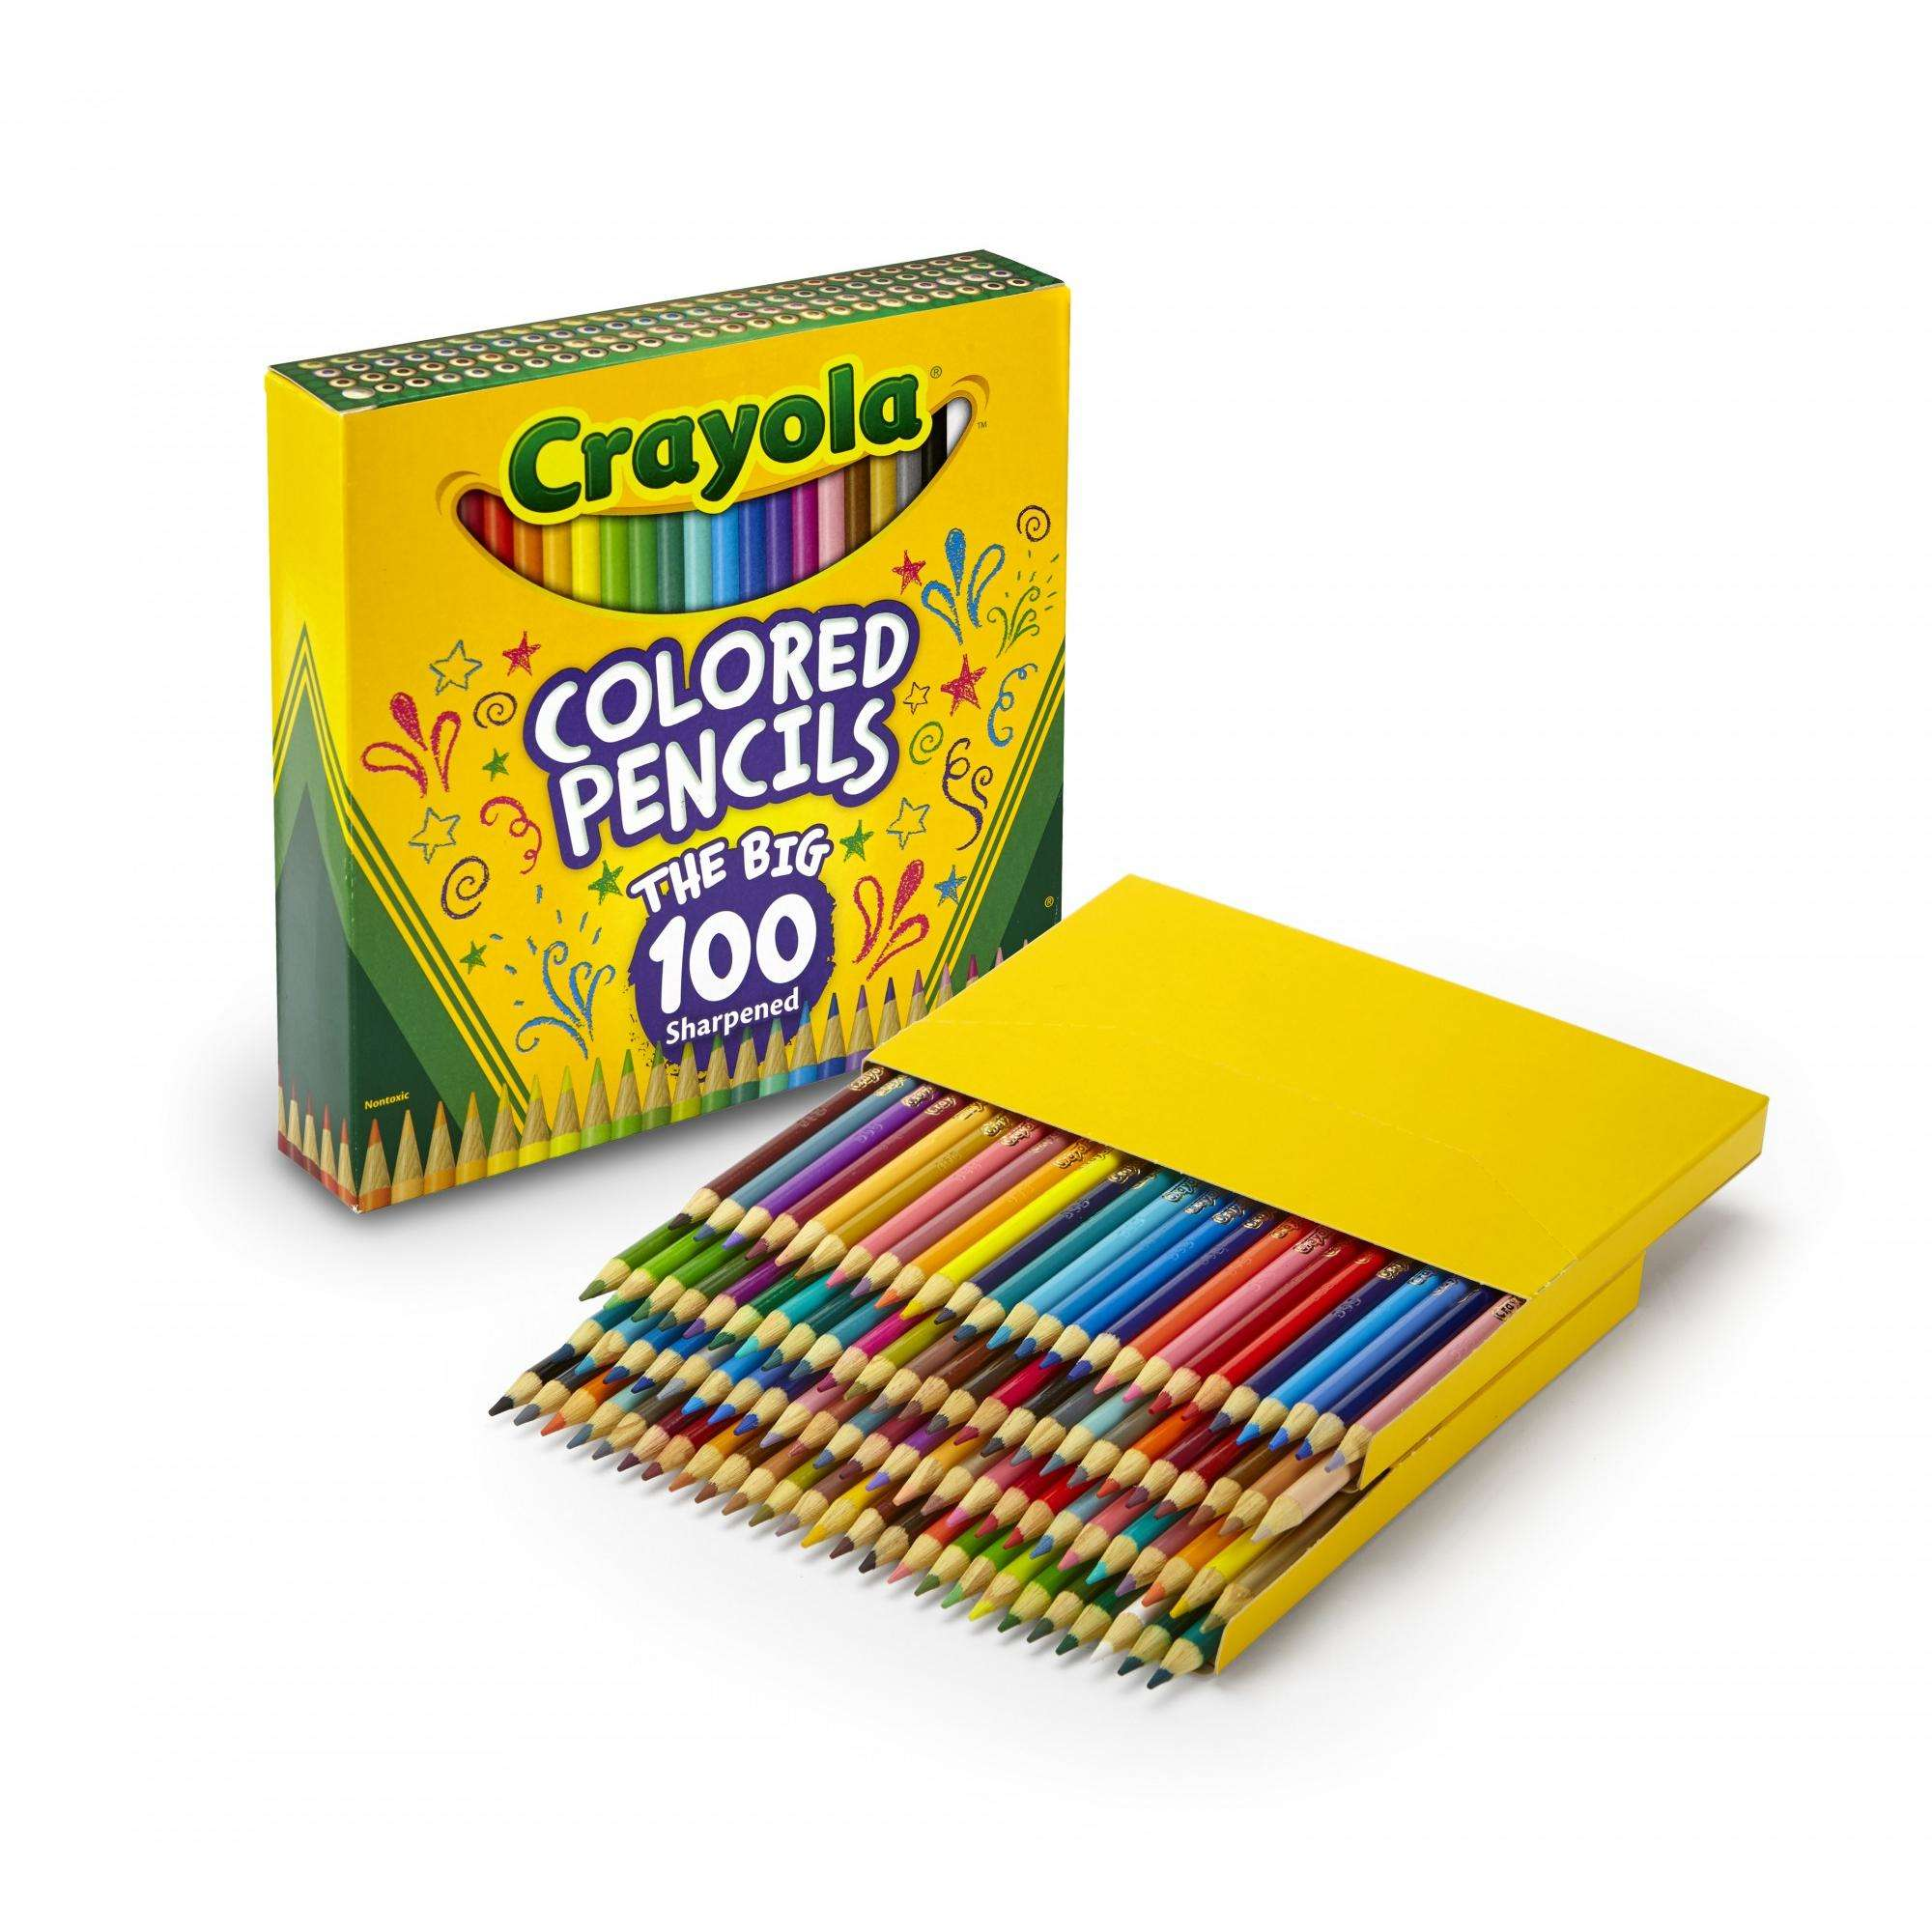 Crayola Colored Pencils in 100 Different Colors, Pre Sharpened